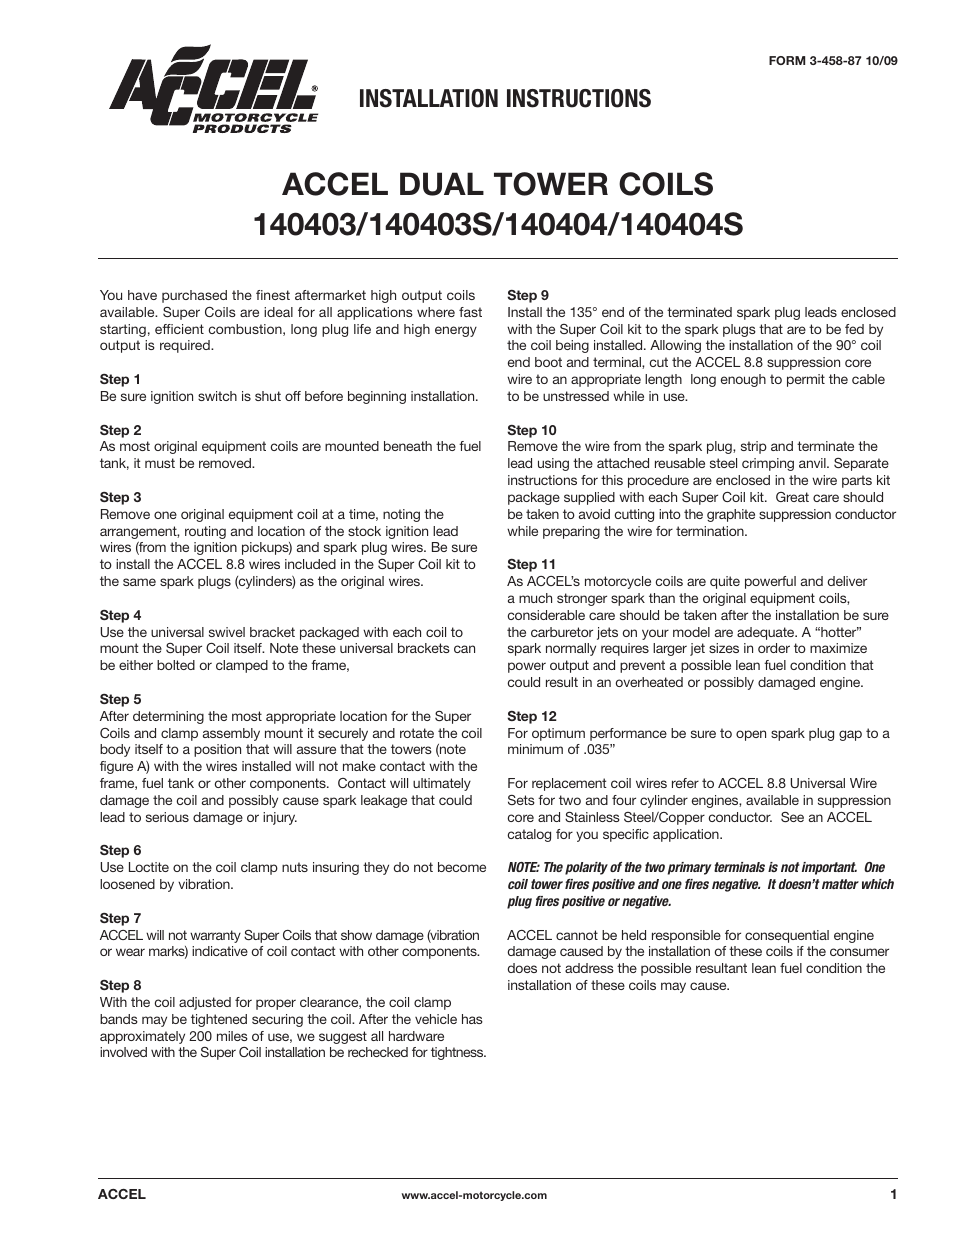 mallory ignition accel dual tower coils 140403 140403s 140404 mallory ignition accel dual tower coils 140403 140403s 140404 140404s user manual 2 pages